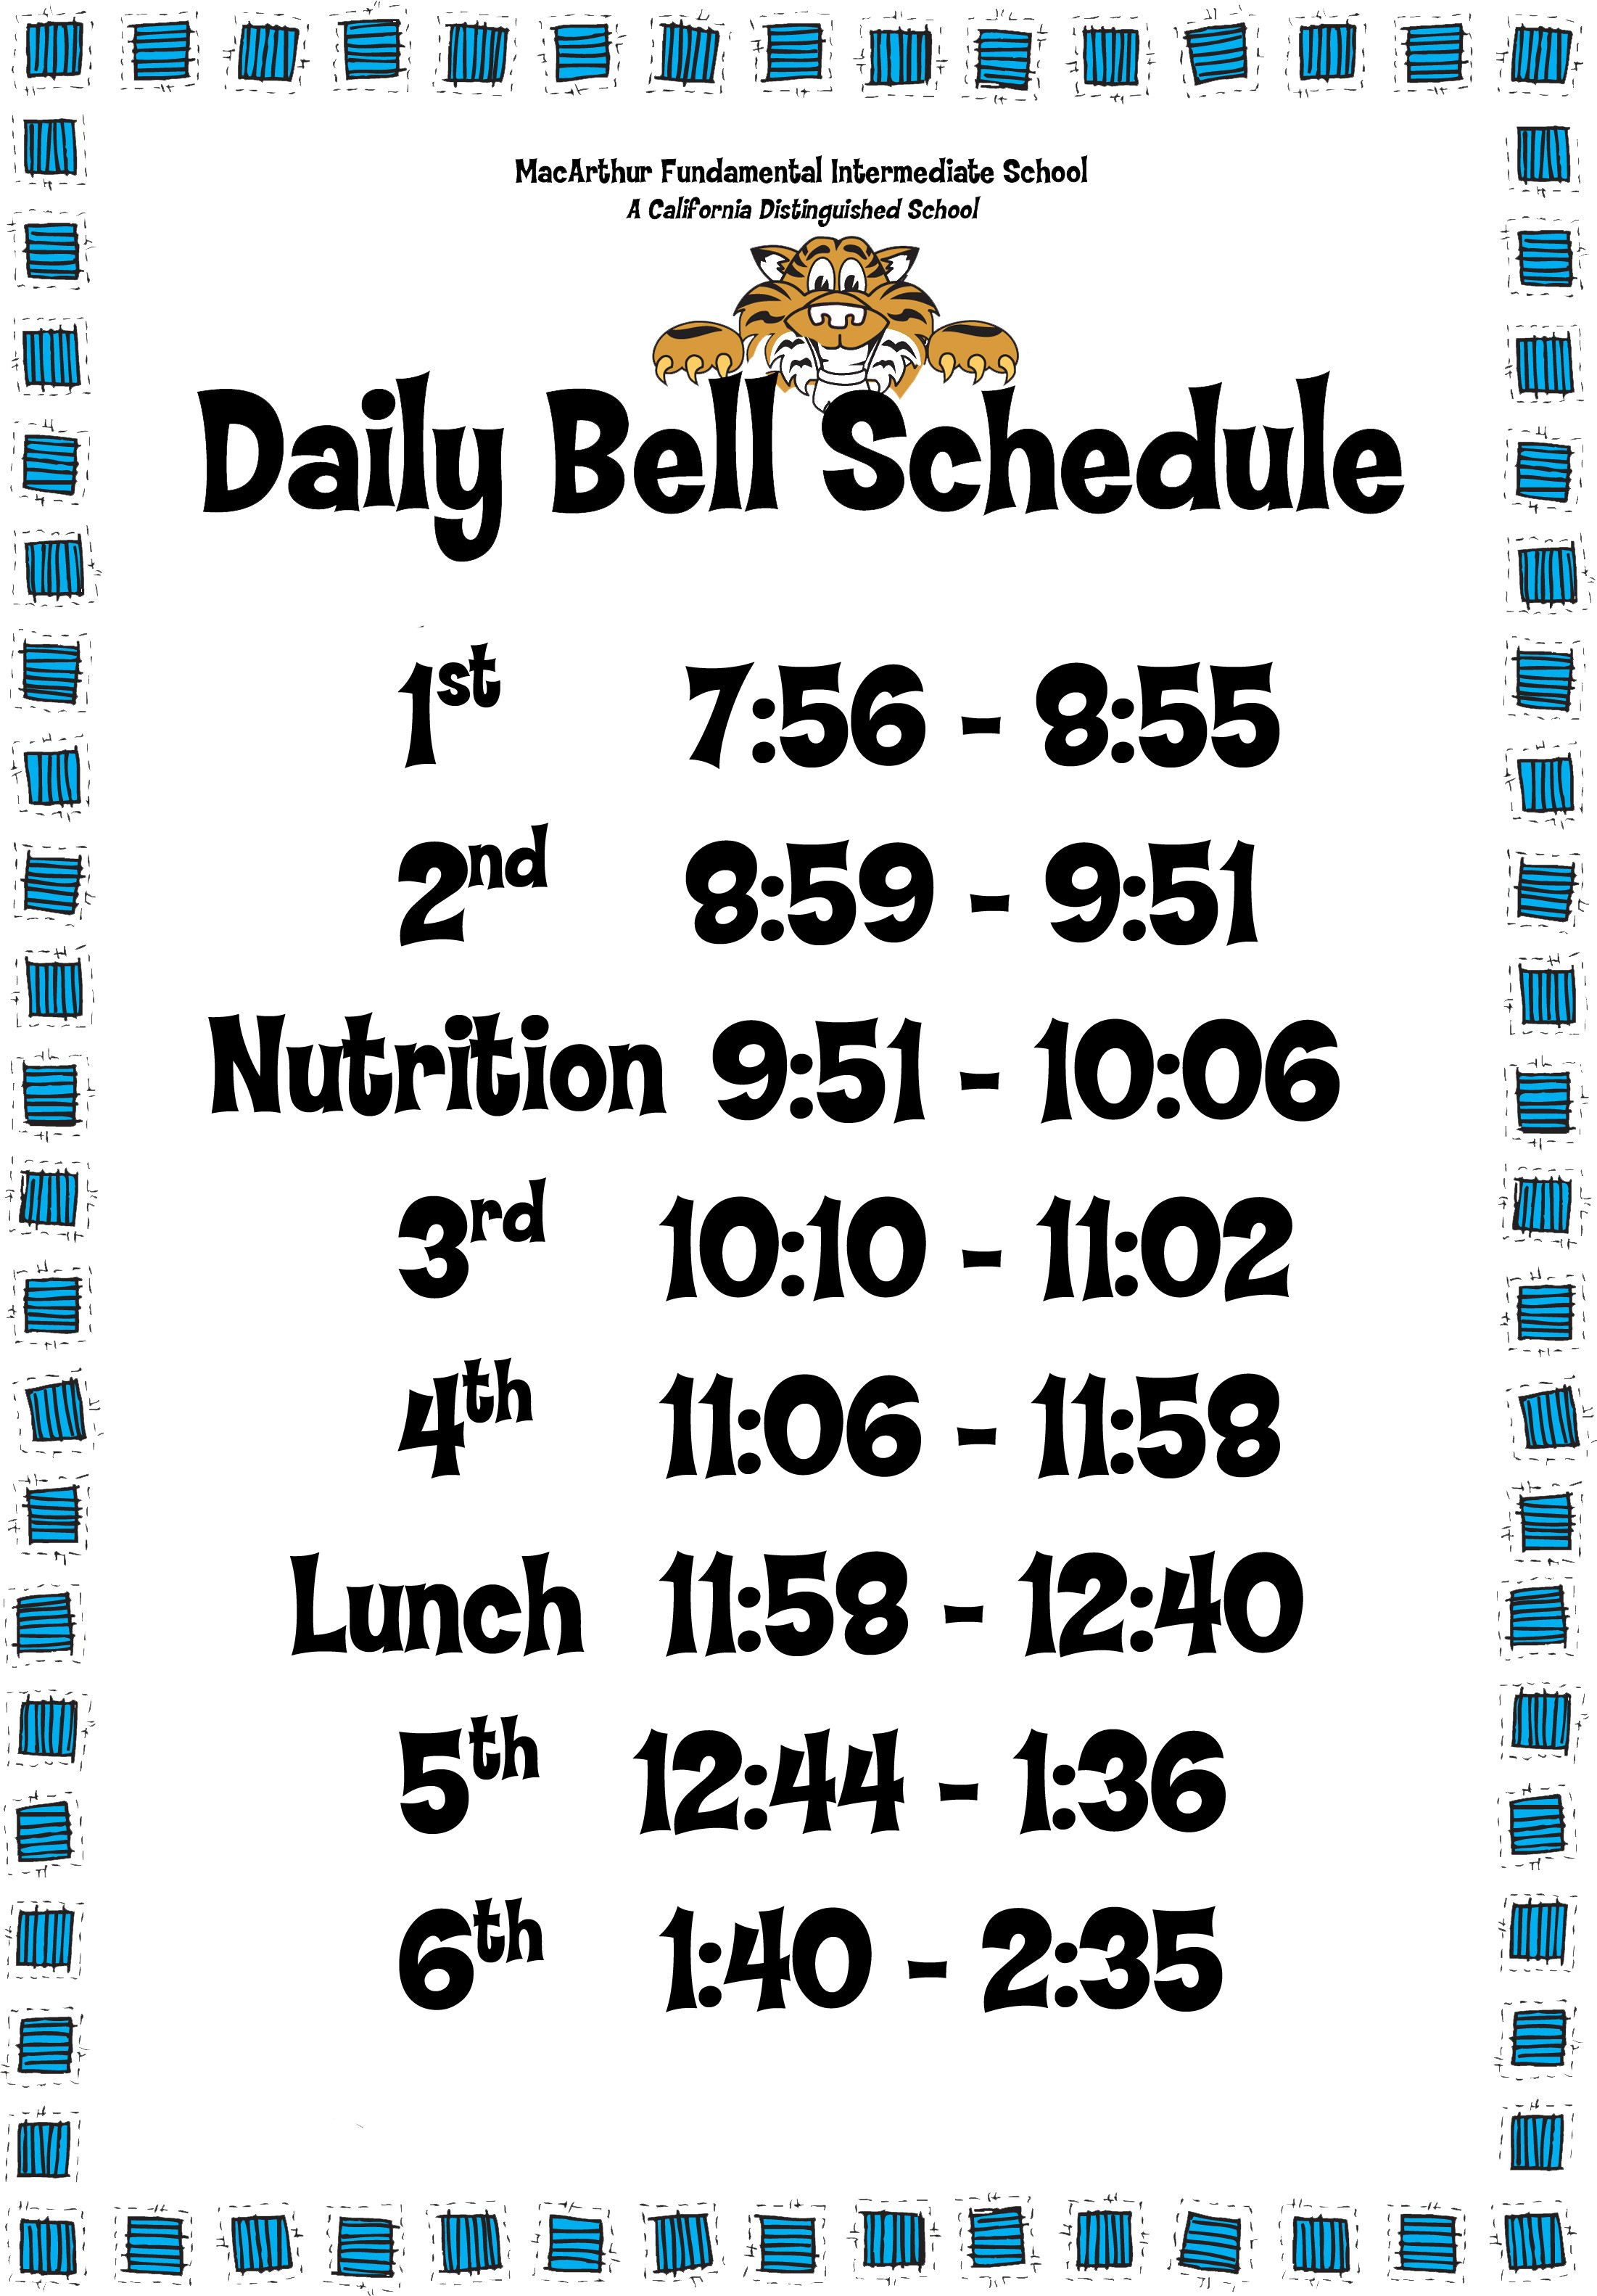 Daily Bell Schedule 6period day